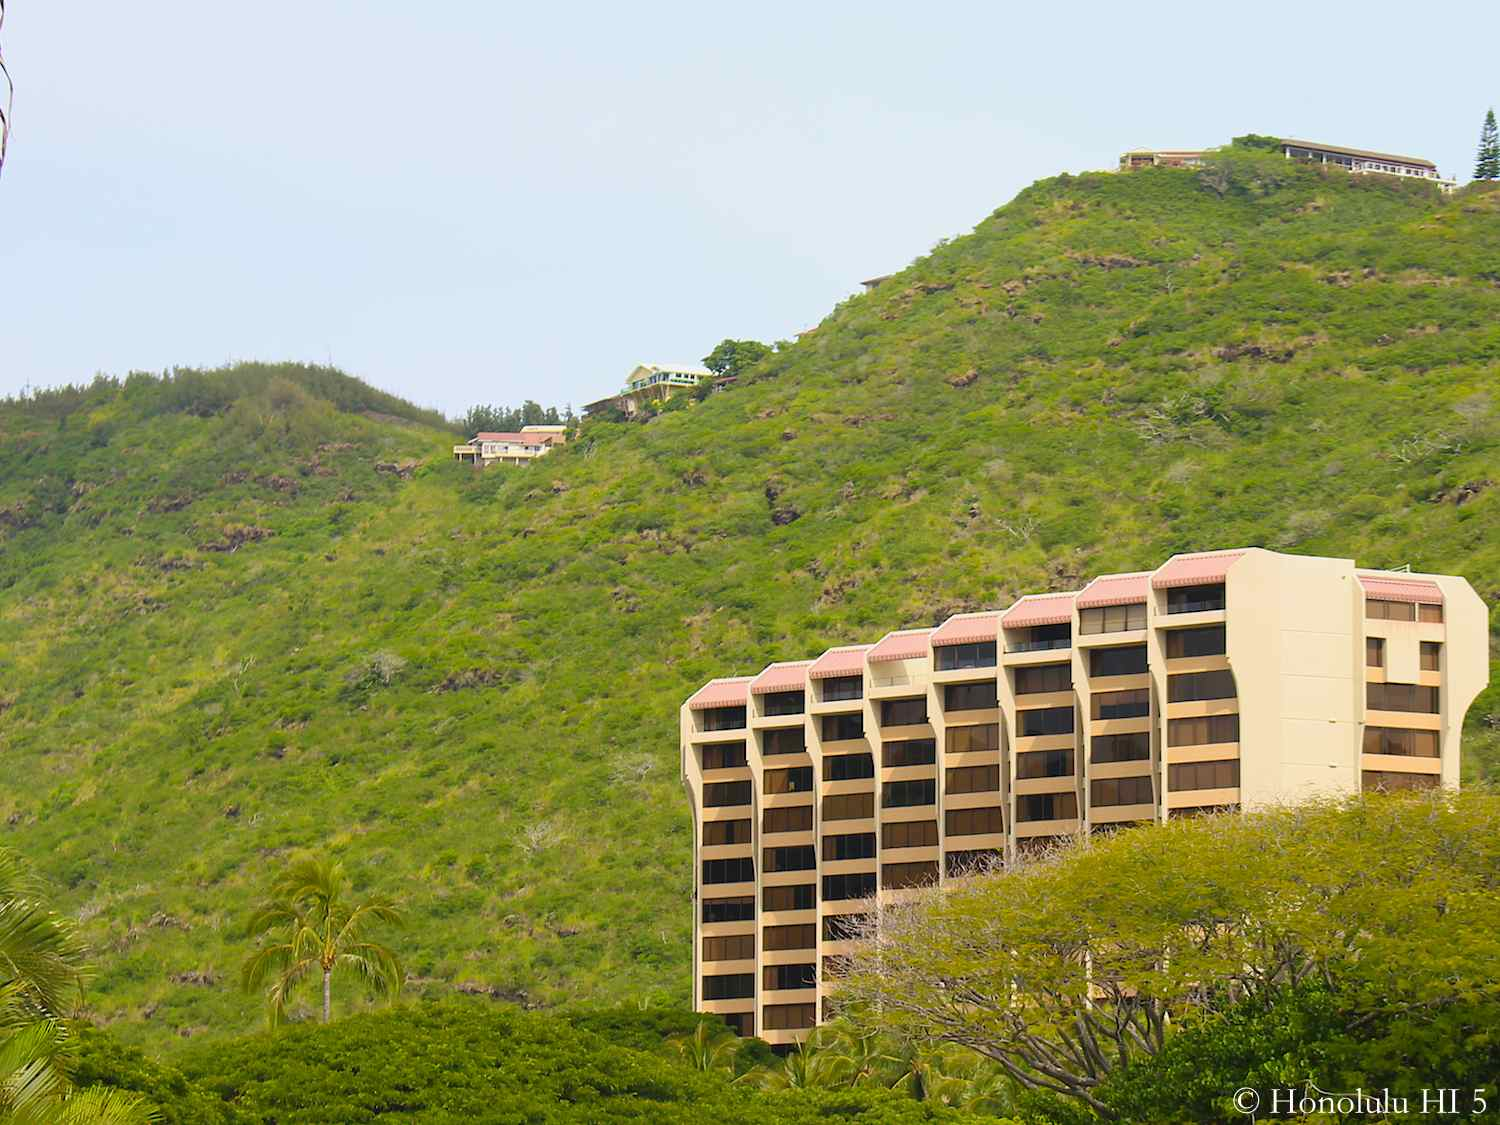 The Commodore Condo in Hawaii Kai Seen with Mountain Range in Background